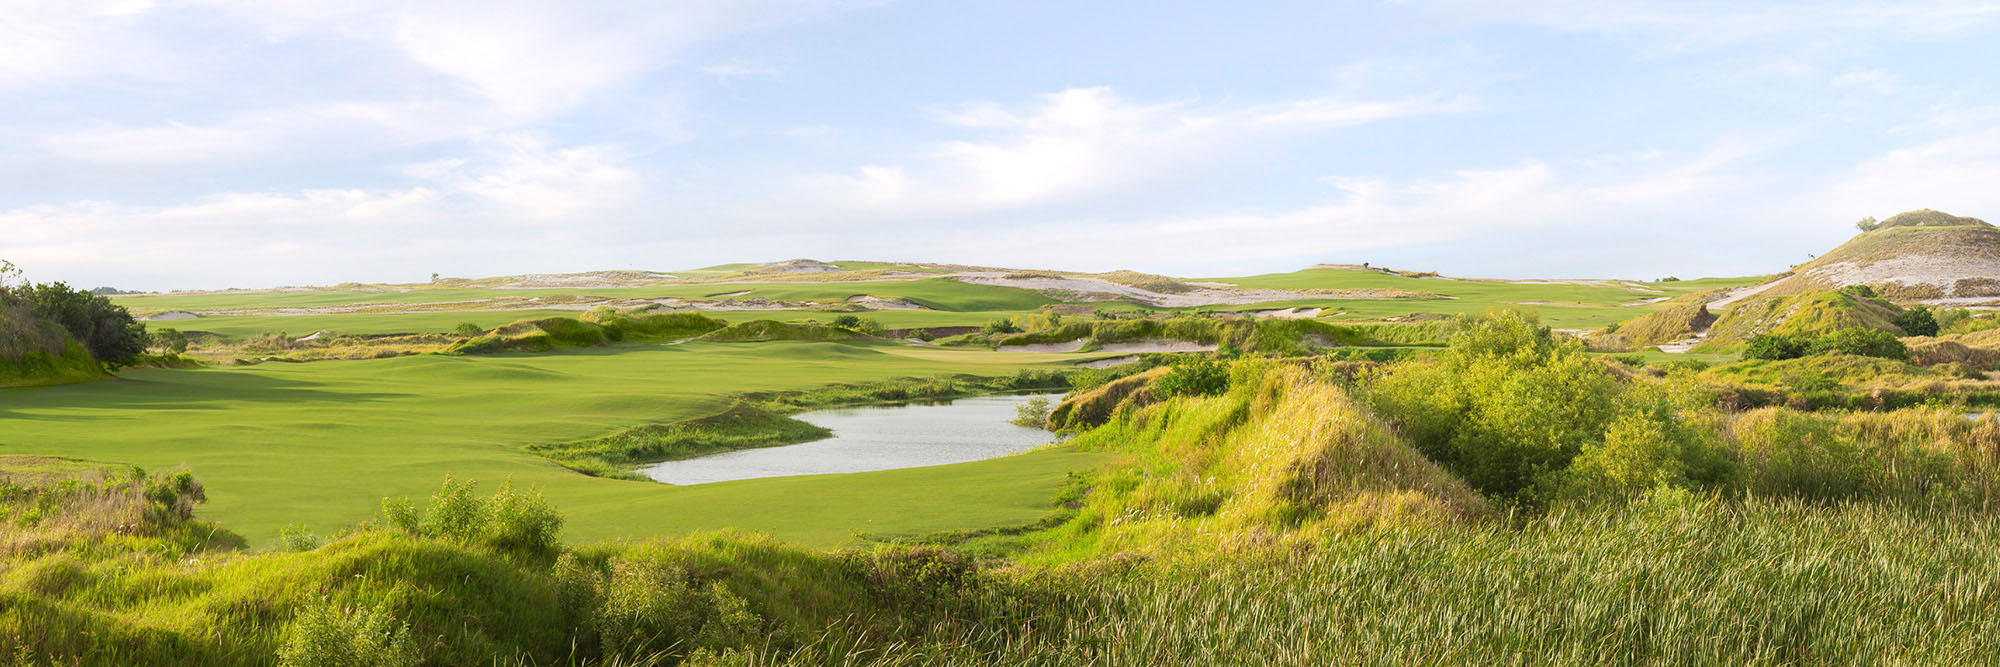 Golf Course Image - Streamsong Red No. 5